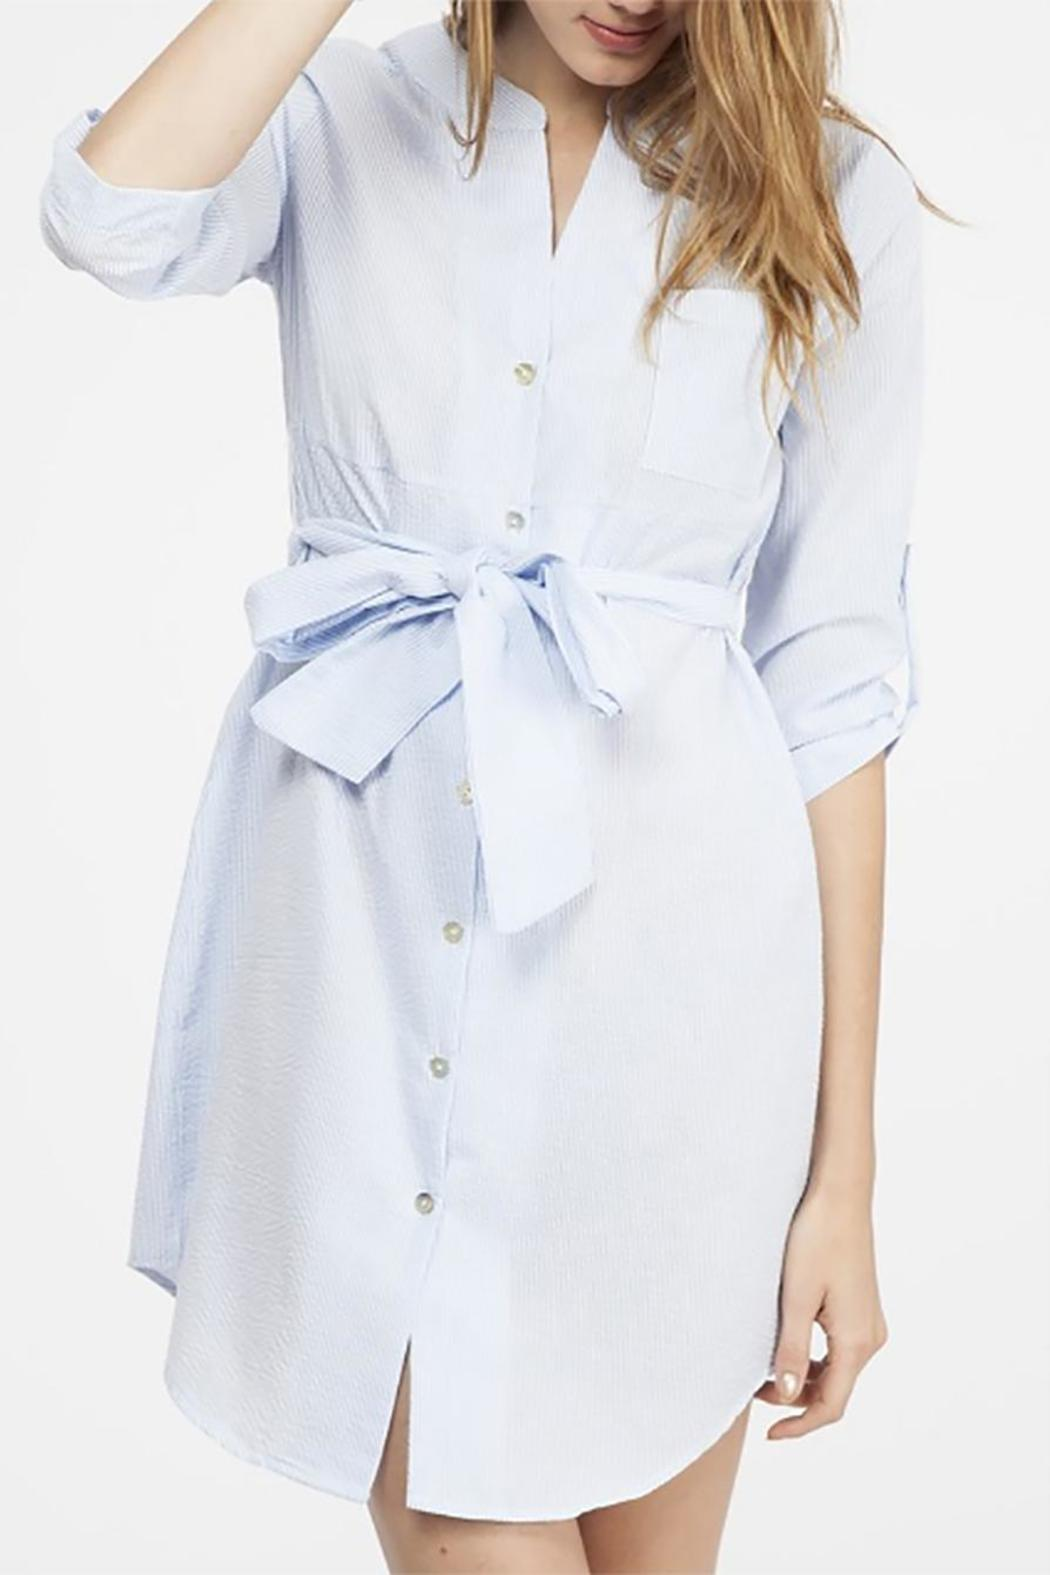 Angie S Seersucker Shirt Dress From Mississippi By Lucky Liles